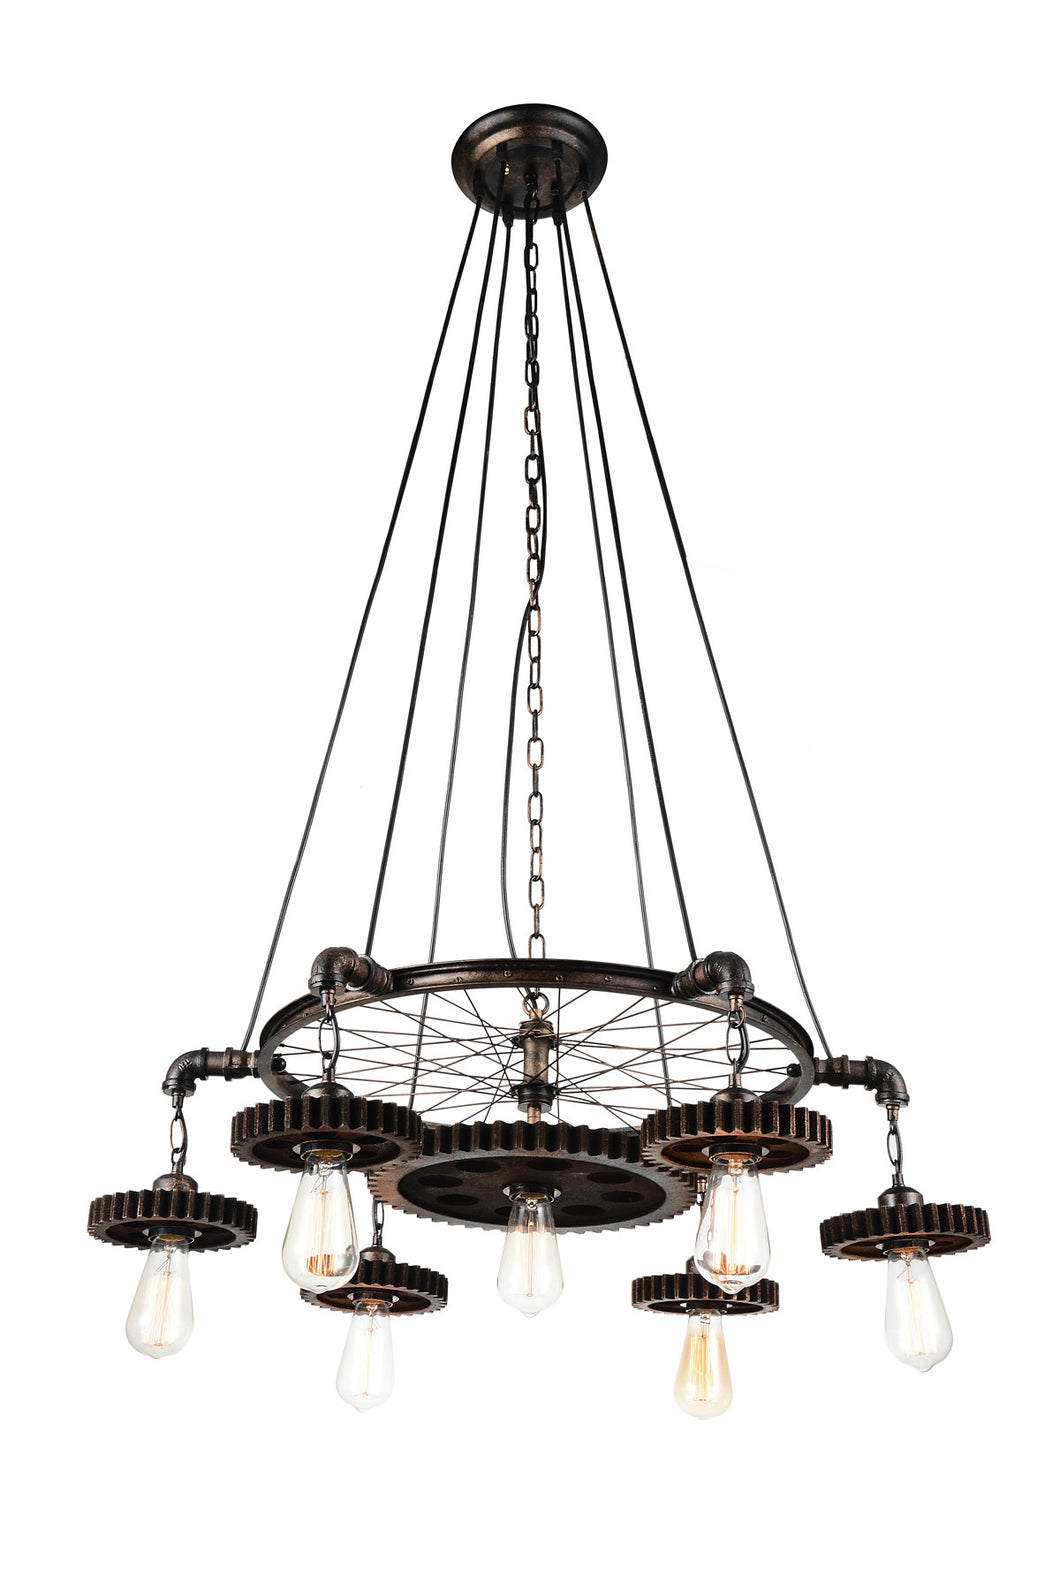 7 Light Down Chandelier with Blackened Copper finish